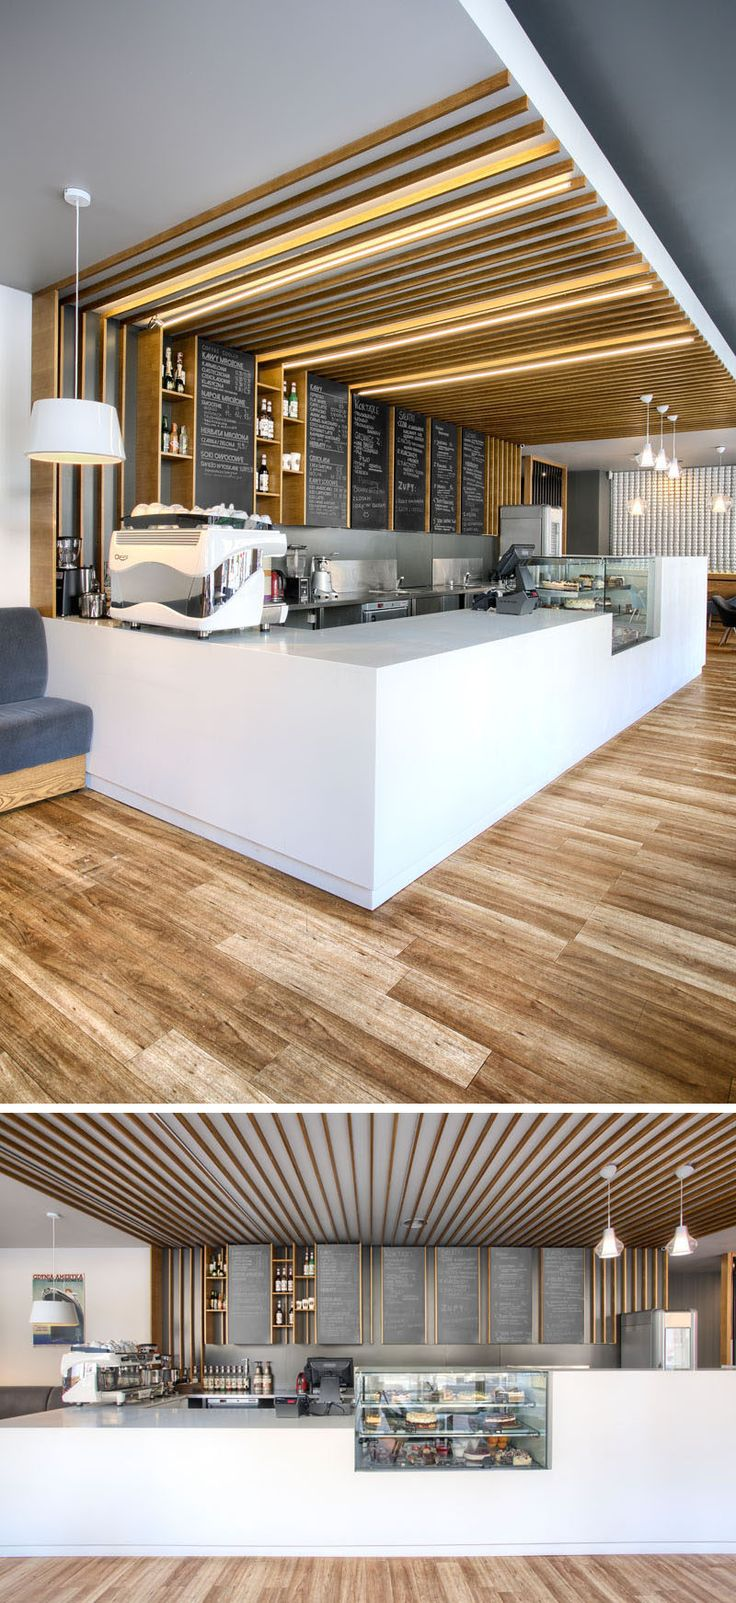 this cafe service counter mixes white counters with glass wood detailing and chalkboards hidden - Glass Sheet Cafe 2015